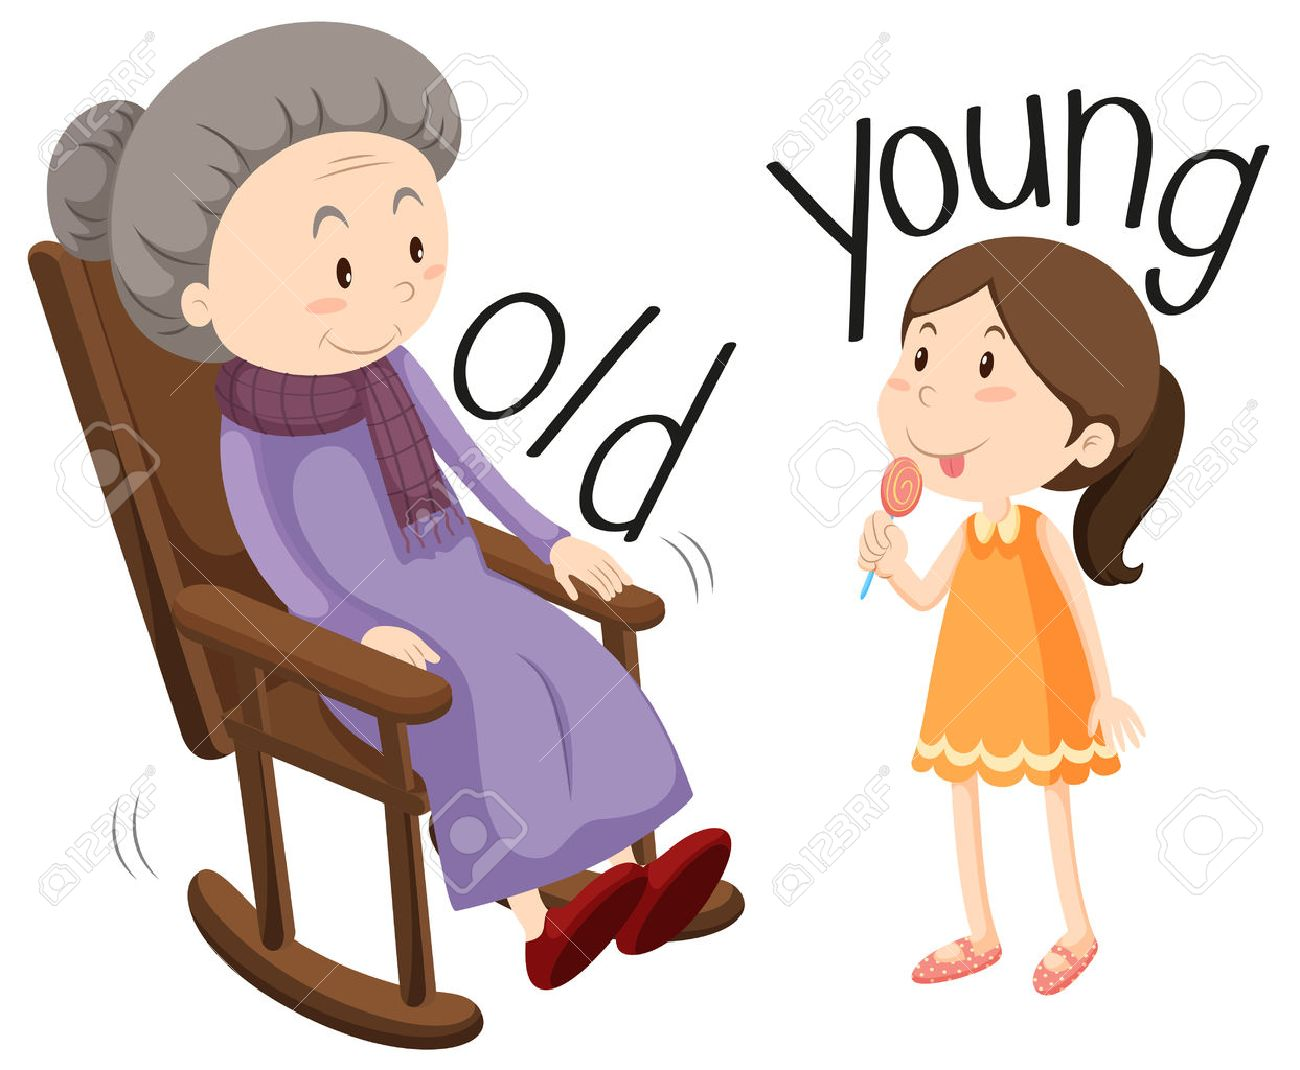 Old woman and young girl illustration.